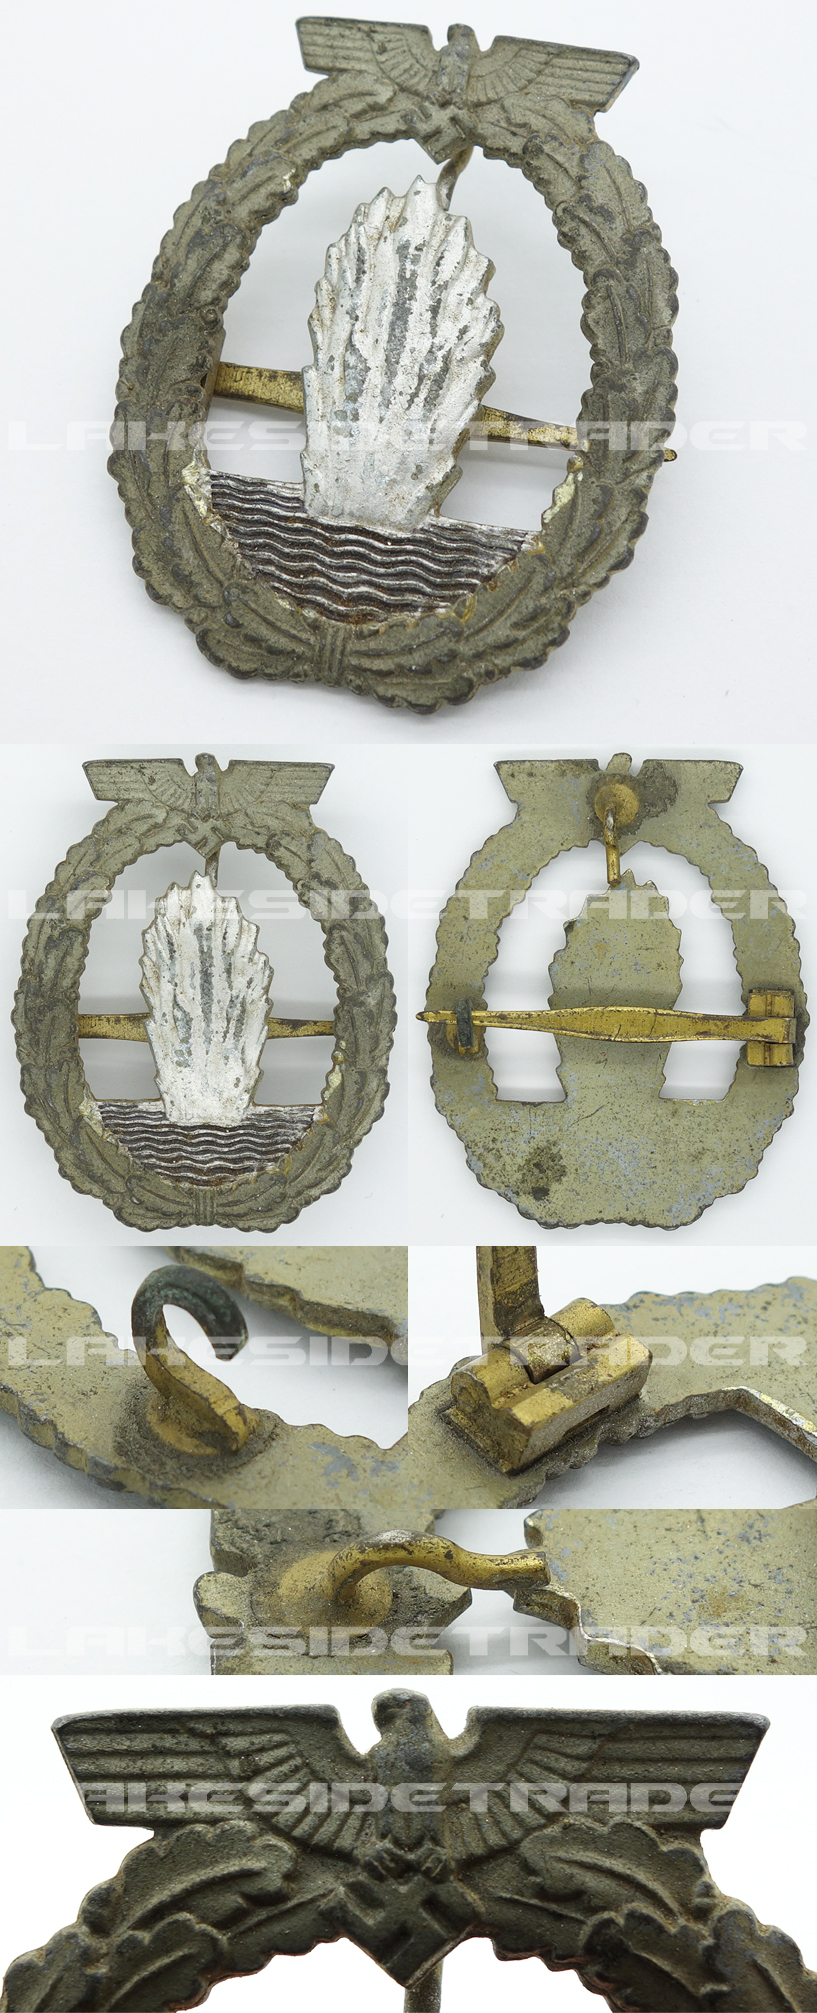 Navy Minesweeper Badge by W. Deumer with Horizontal Pin